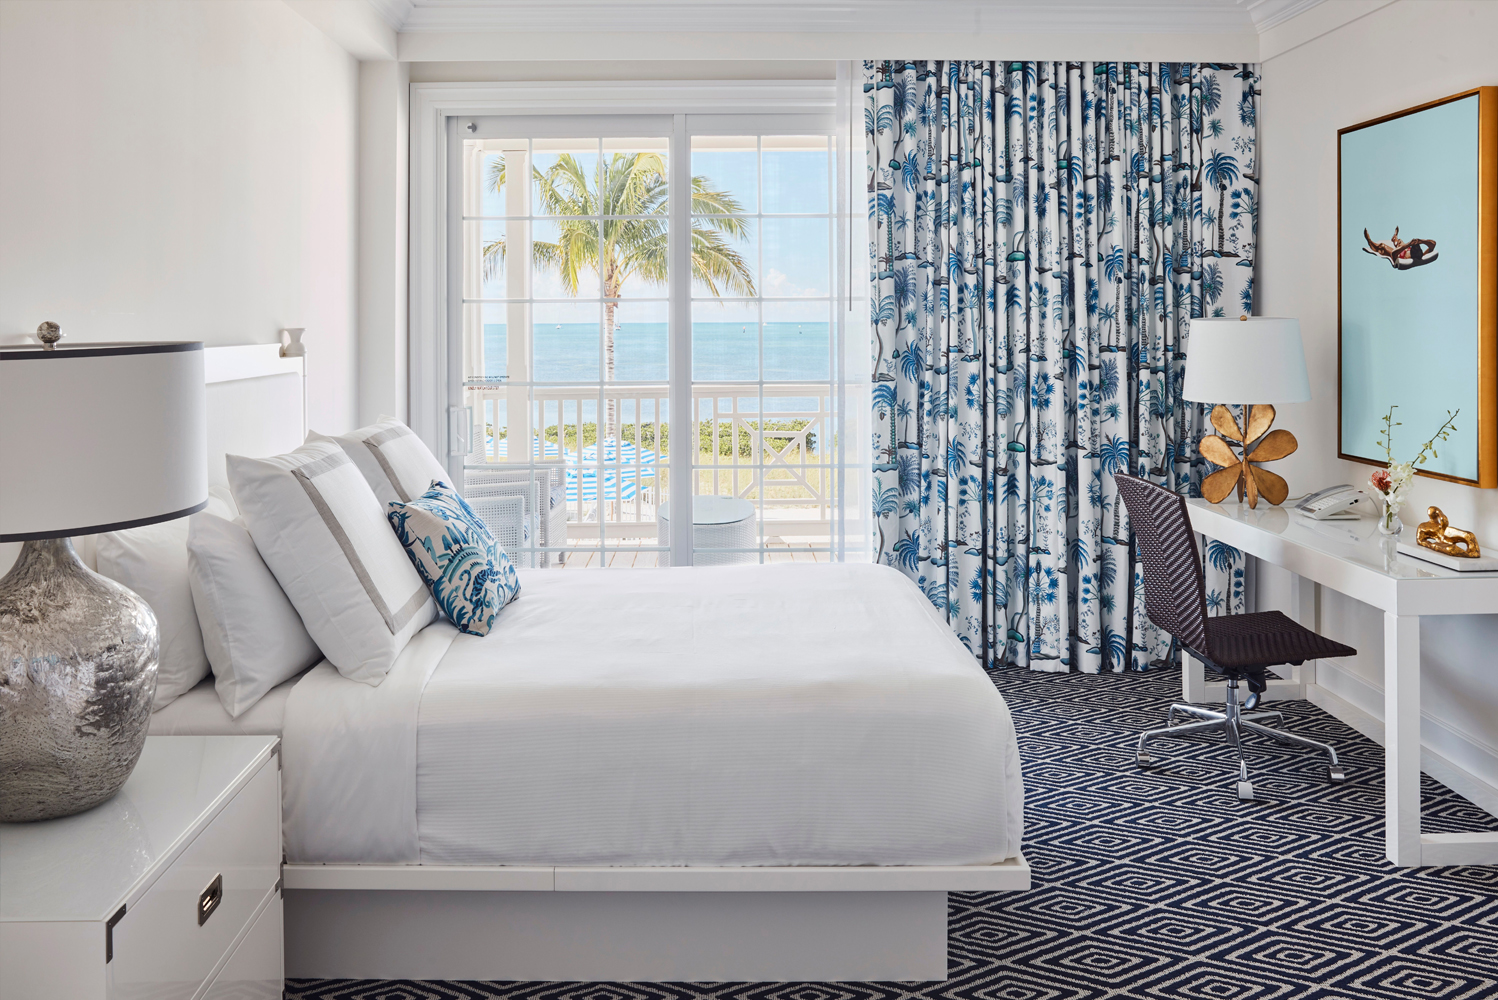 Key design elements in the guestrooms and suites include decorative archways, reclaimed ship wood, clapboard exteriors and open breezeways to emphasize indoor/outdoor living and the surrounding ocean.